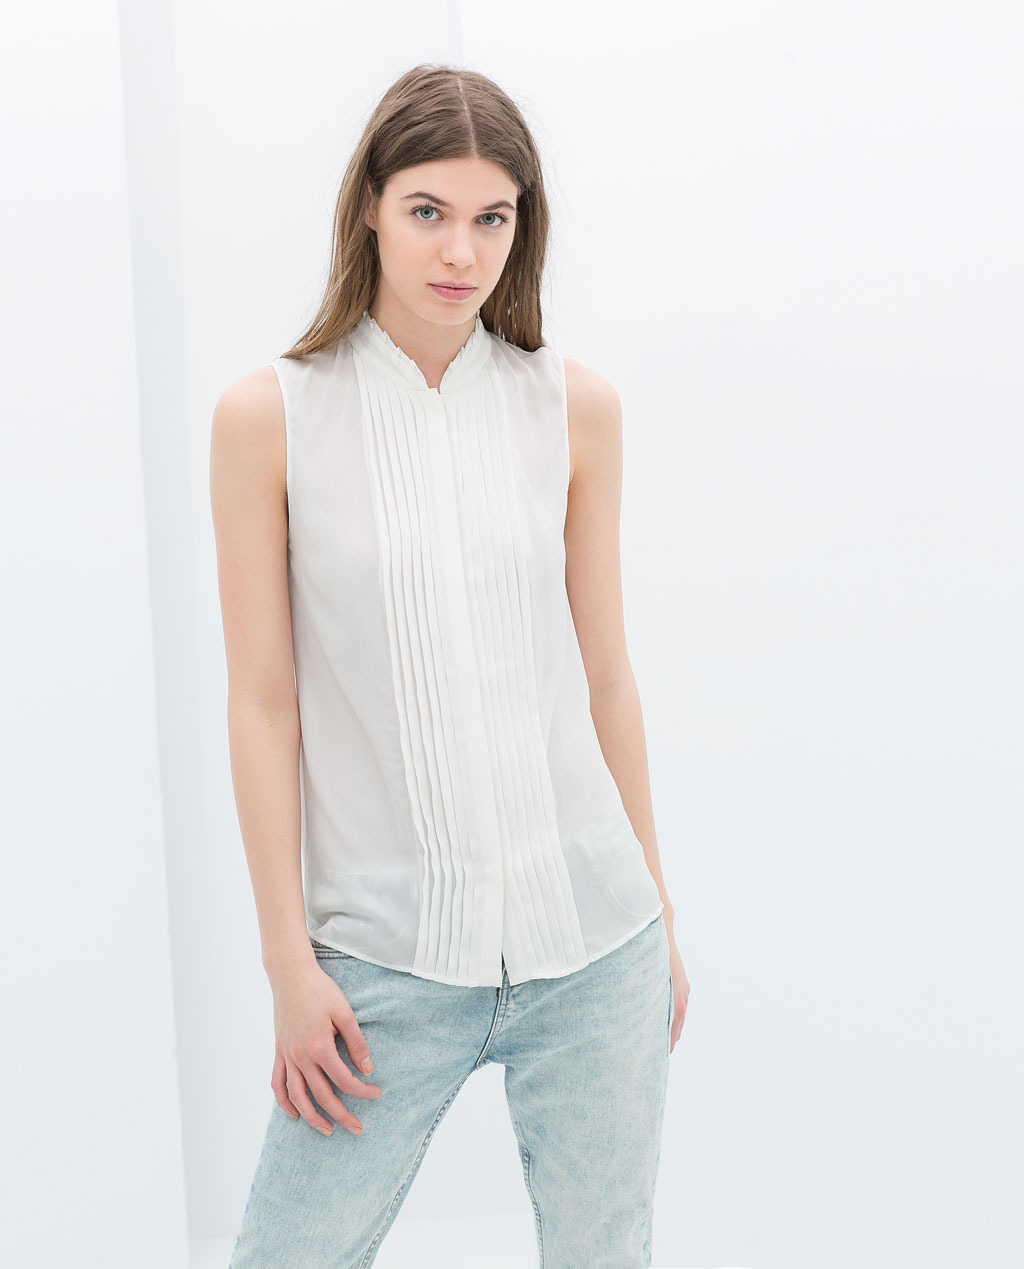 Pleated Shirt - pattern: plain; sleeve style: sleeveless; style: shirt; predominant colour: ivory/cream; occasions: casual, evening, work, holiday, creative work; length: standard; neckline: collarstand; fibres: polyester/polyamide - 100%; fit: straight cut; sleeve length: sleeveless; texture group: sheer fabrics/chiffon/organza etc.; season: s/s 2014